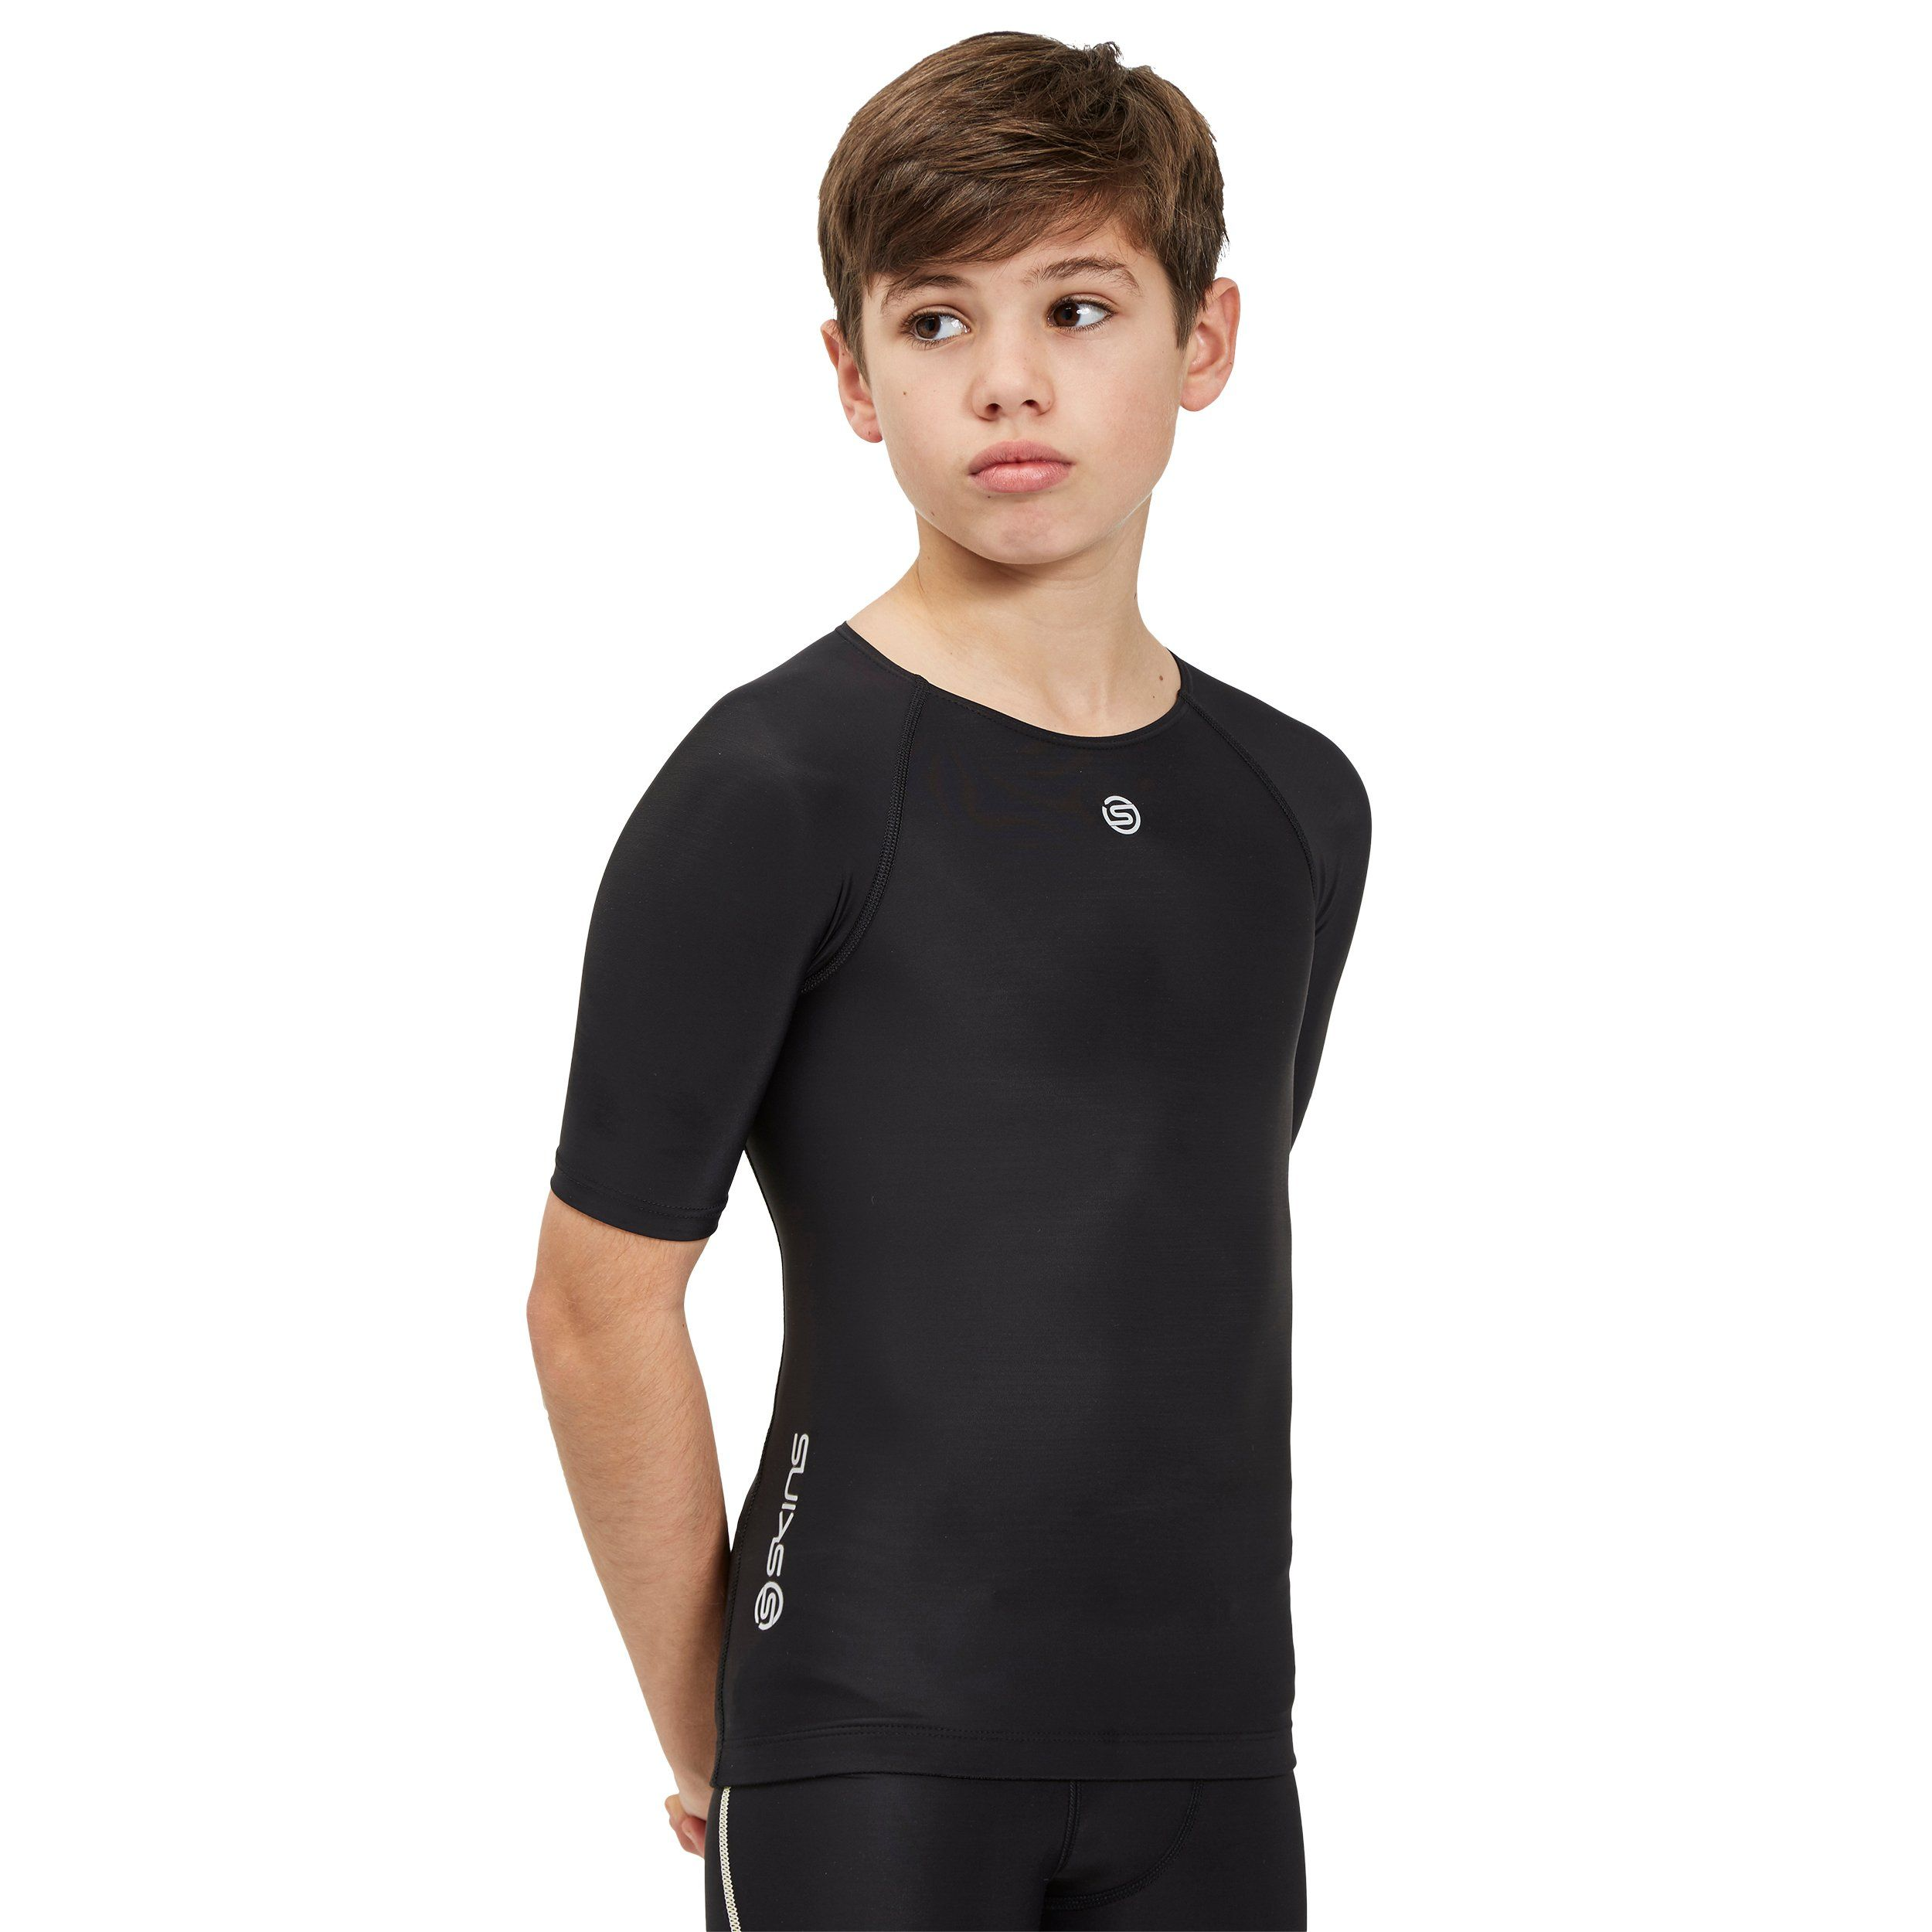 Skins DNAmic Team Junior Compression T-Shirt